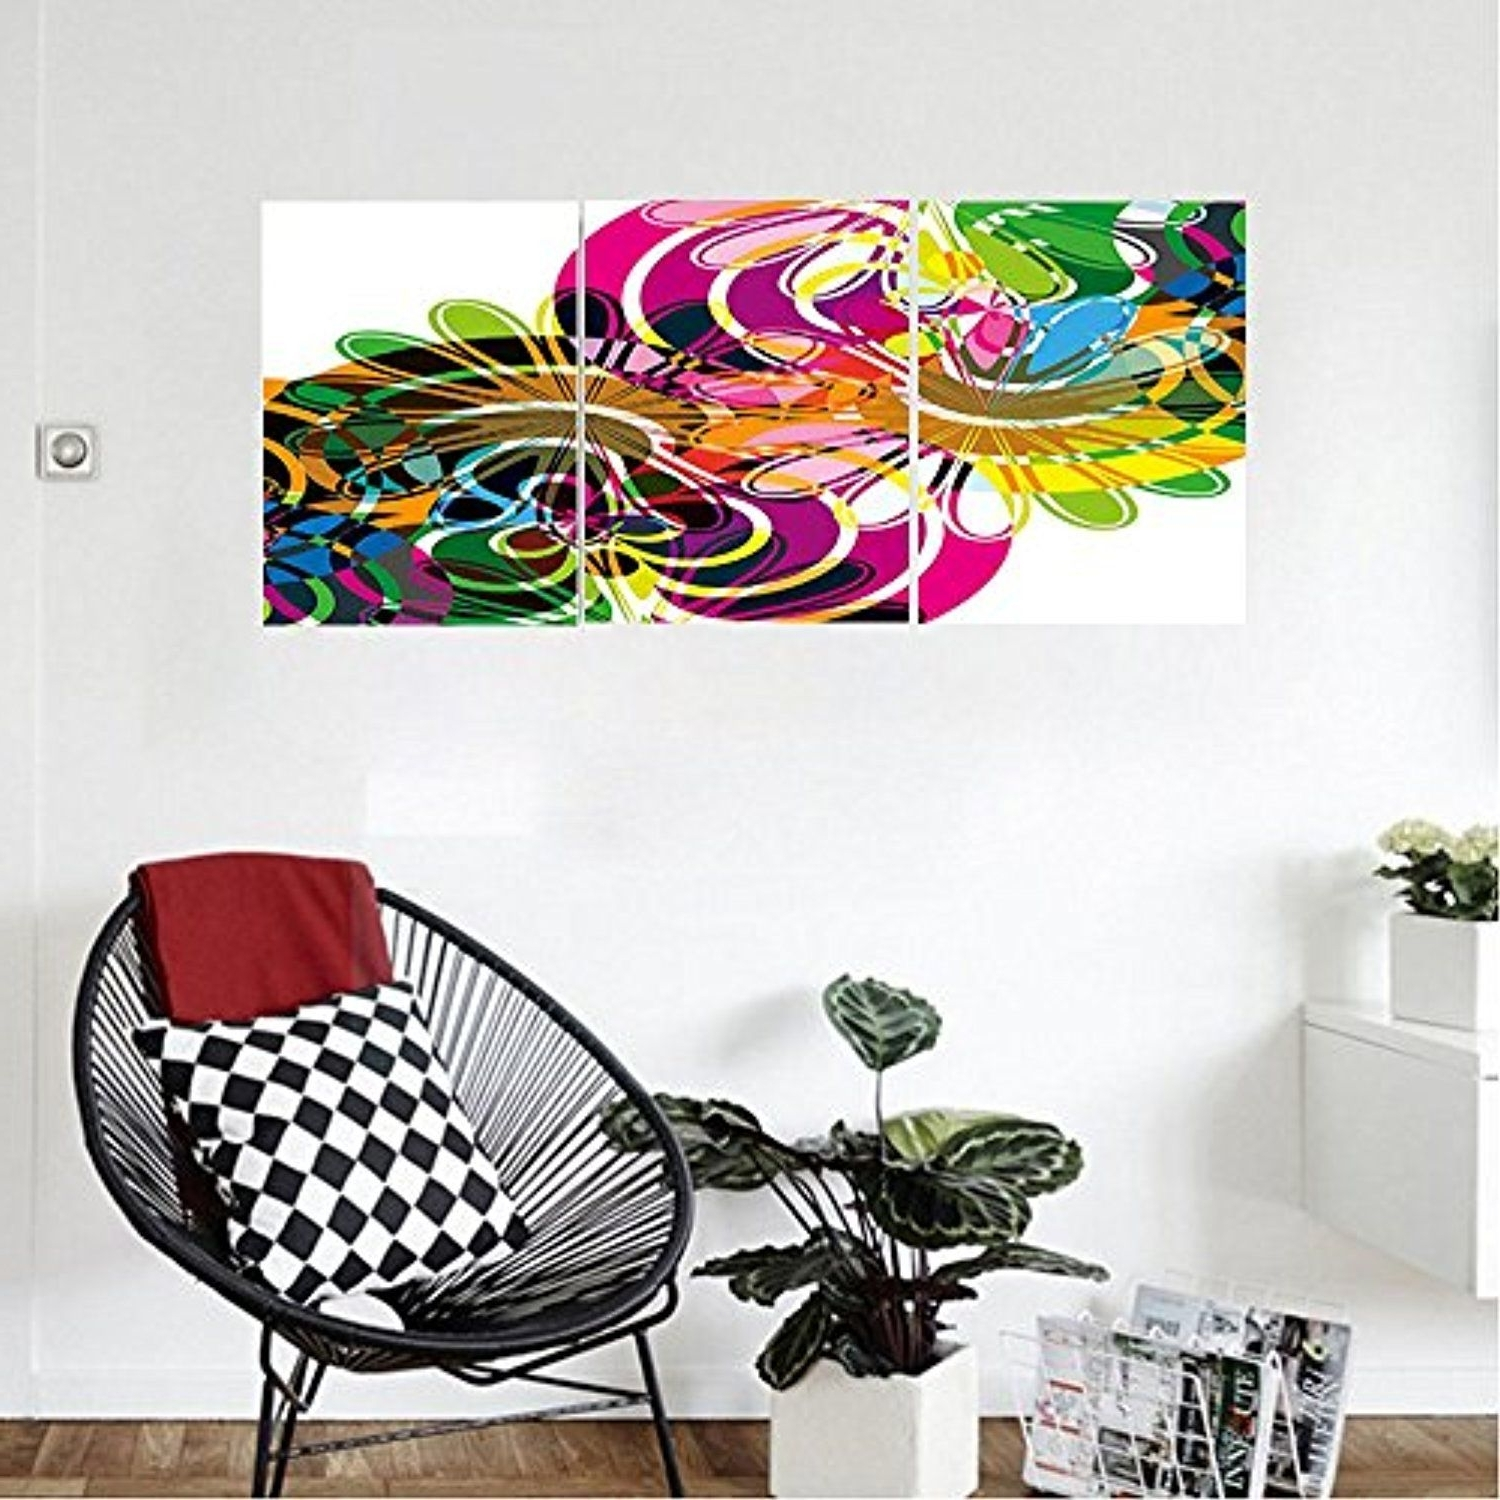 Modern Wall Art Decors Inside Preferred Liguo88 Custom Canvas Modern Decor Rainbow Colorful Abstract Decor (View 11 of 20)